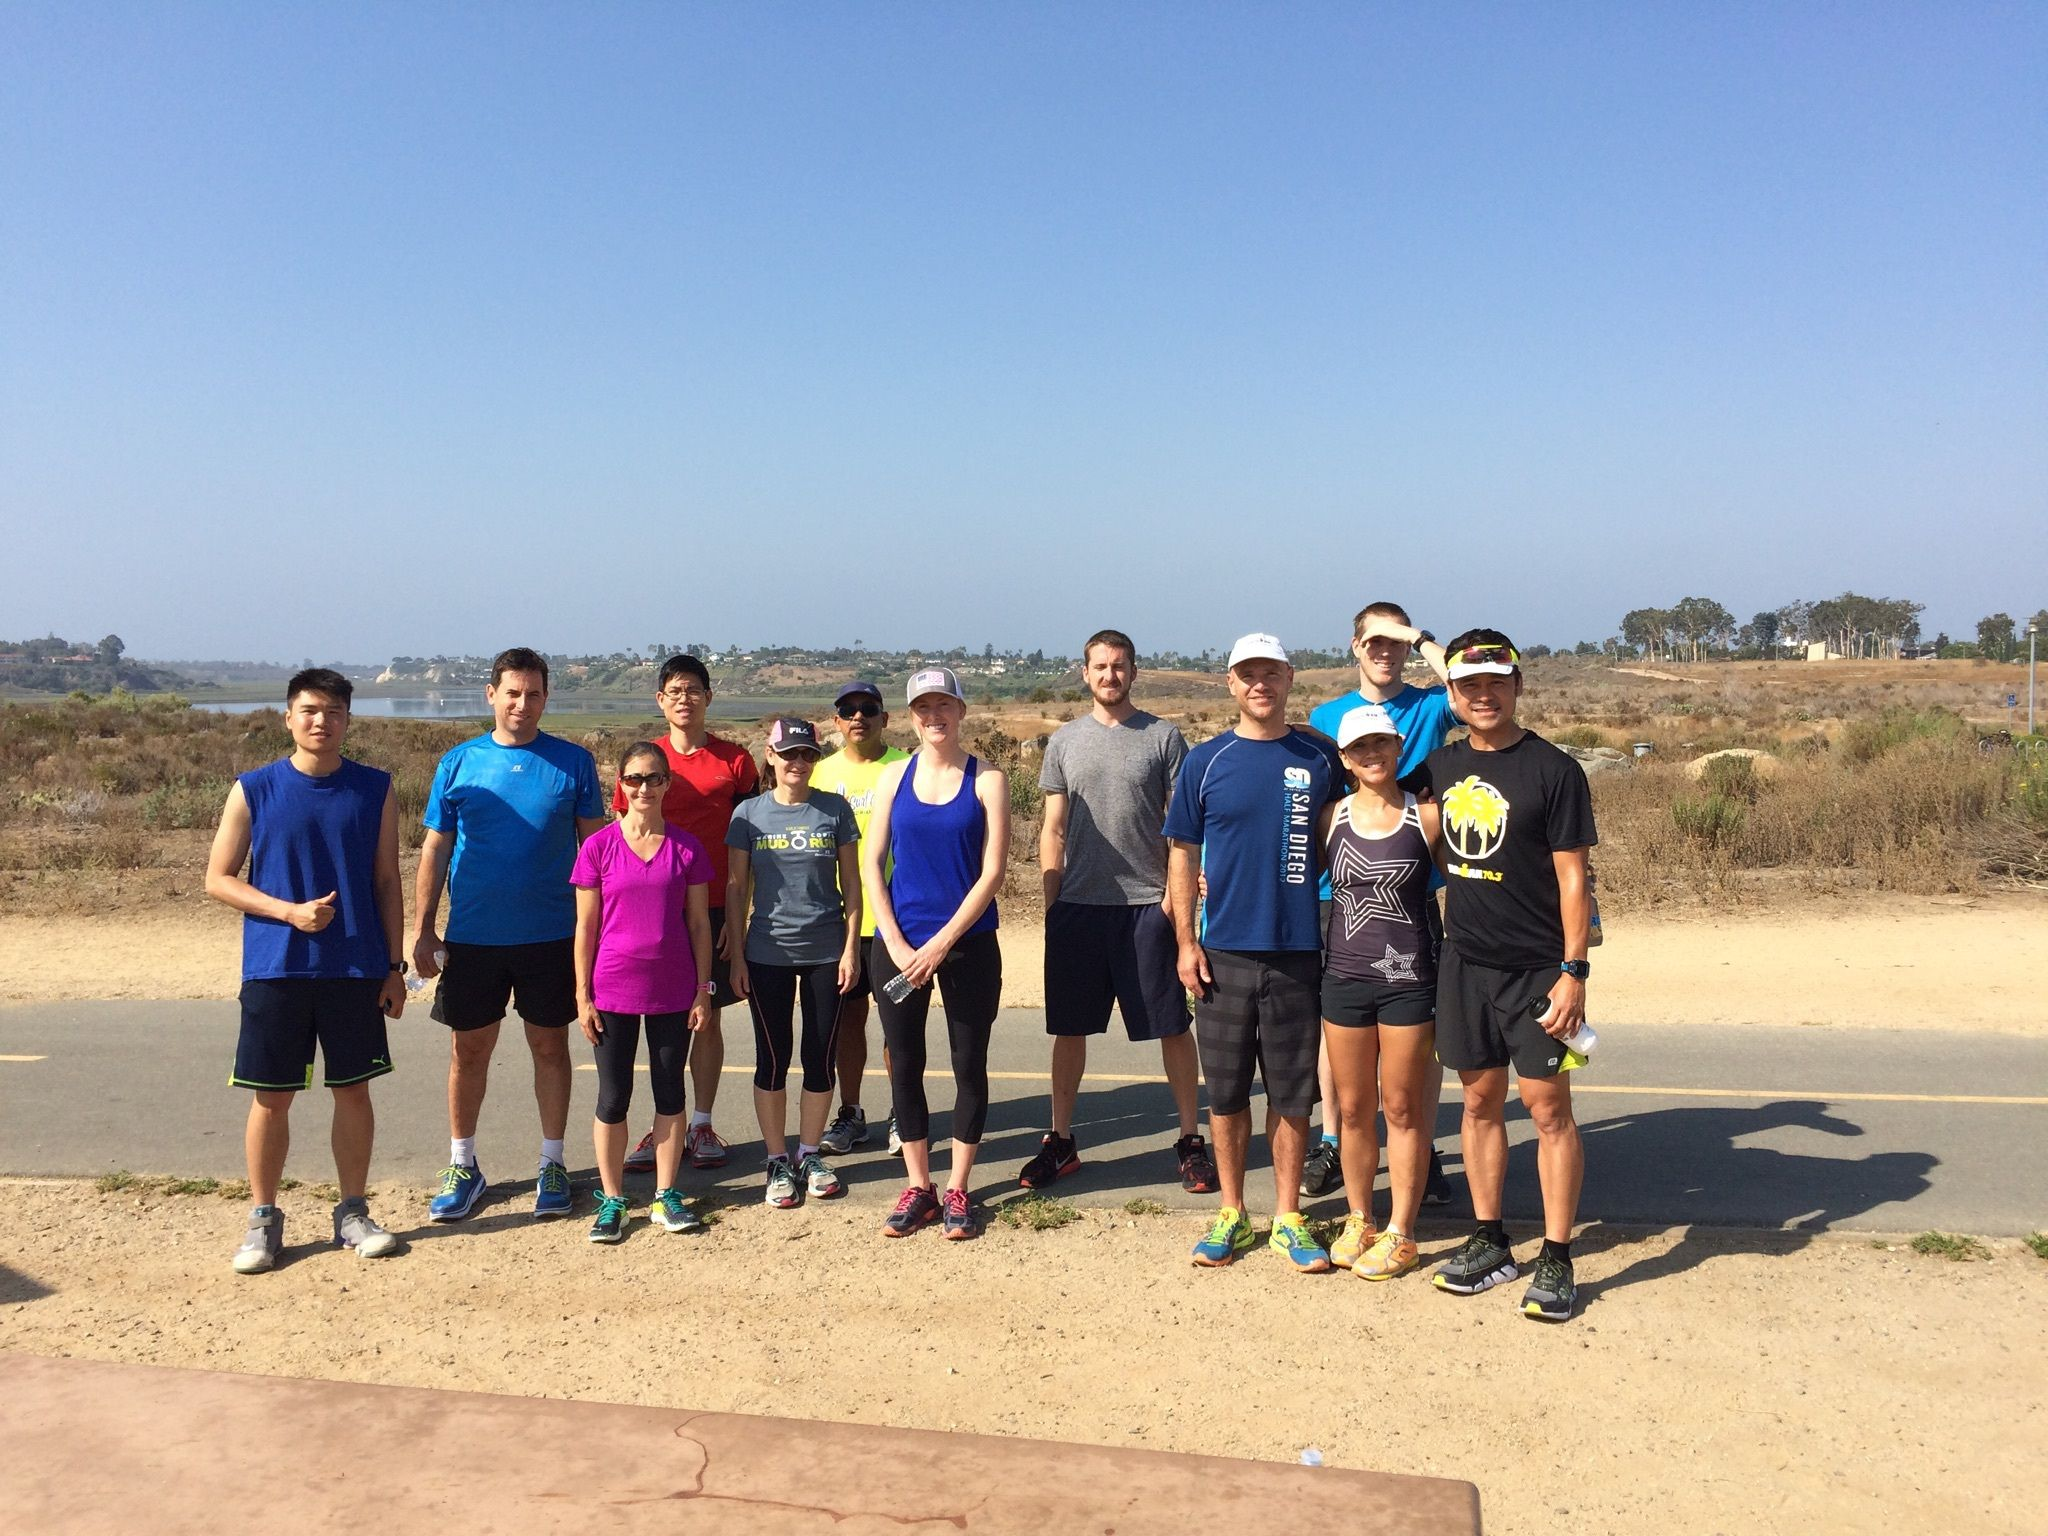 A Snail's Pace Running Club - Fountain Valley